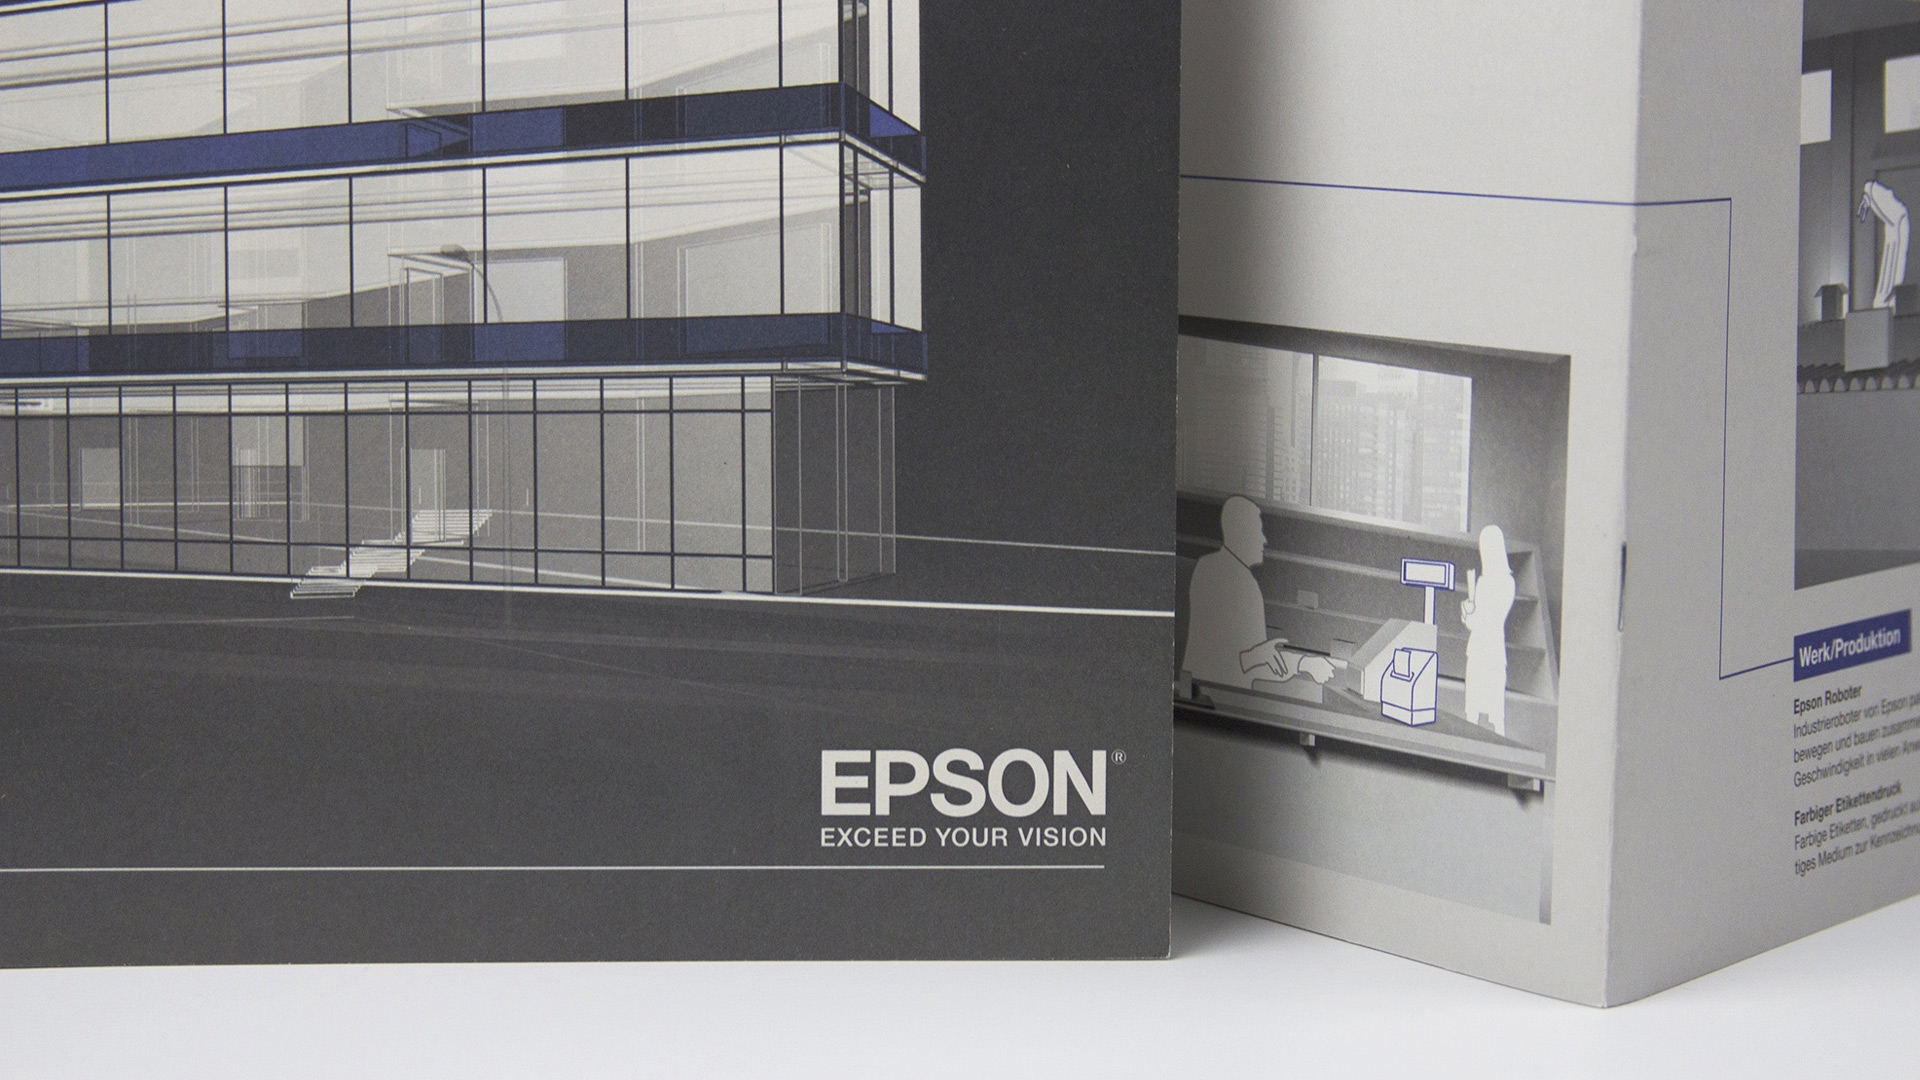 Epson exceed your vision Flyer